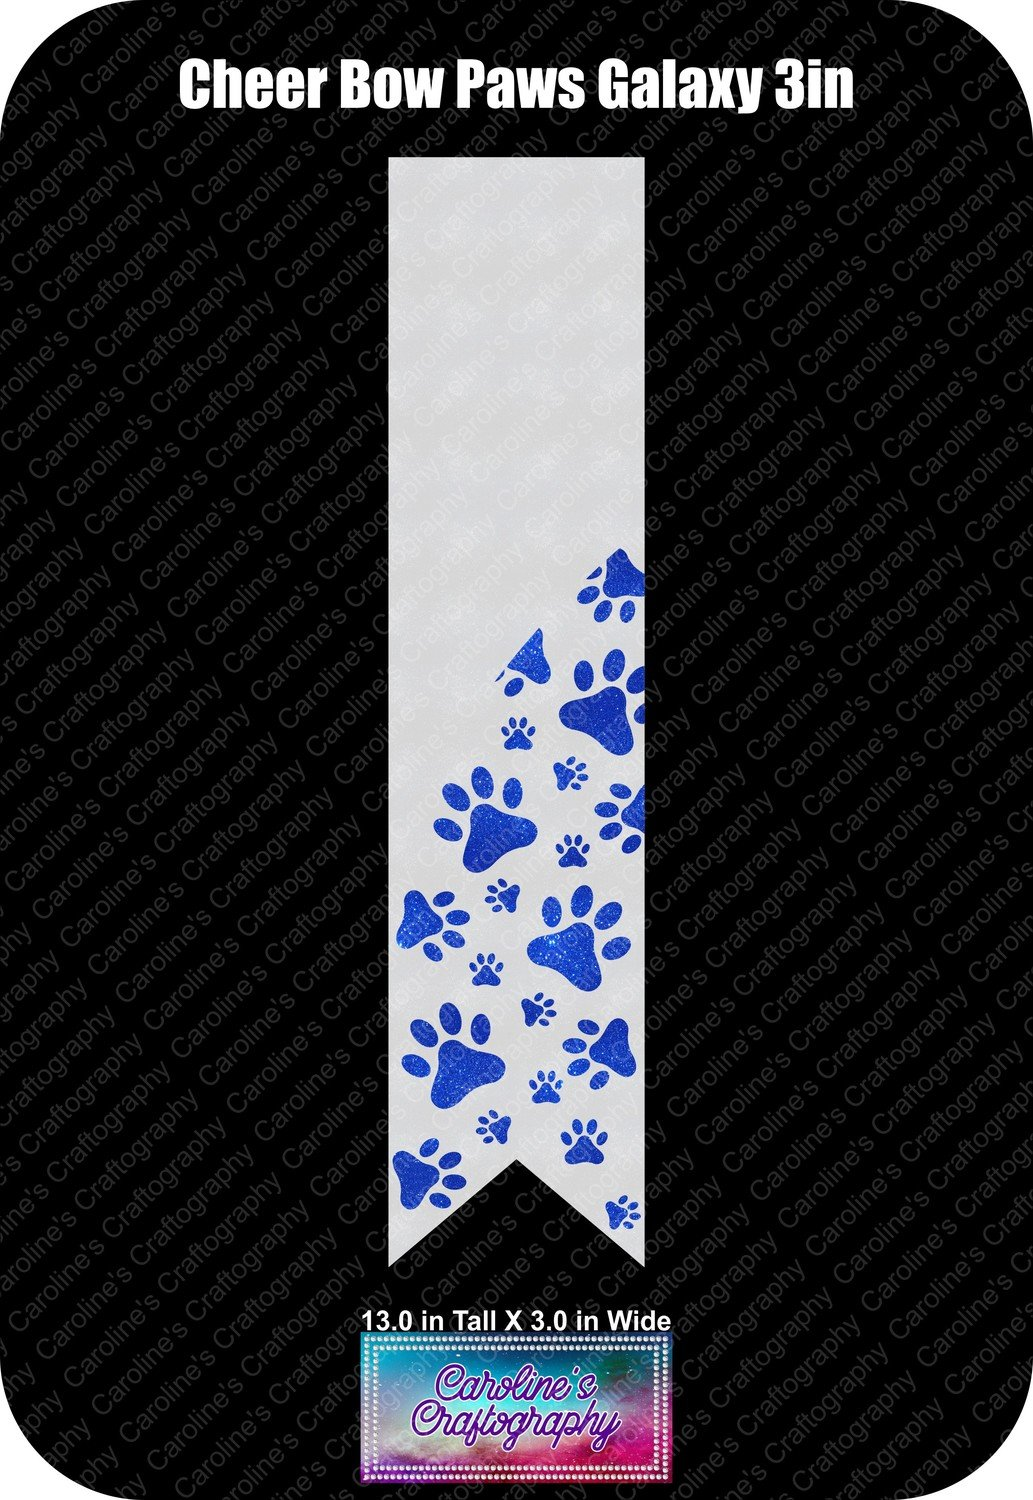 Paws Galaxy 3in Cheer Bow Vinyl